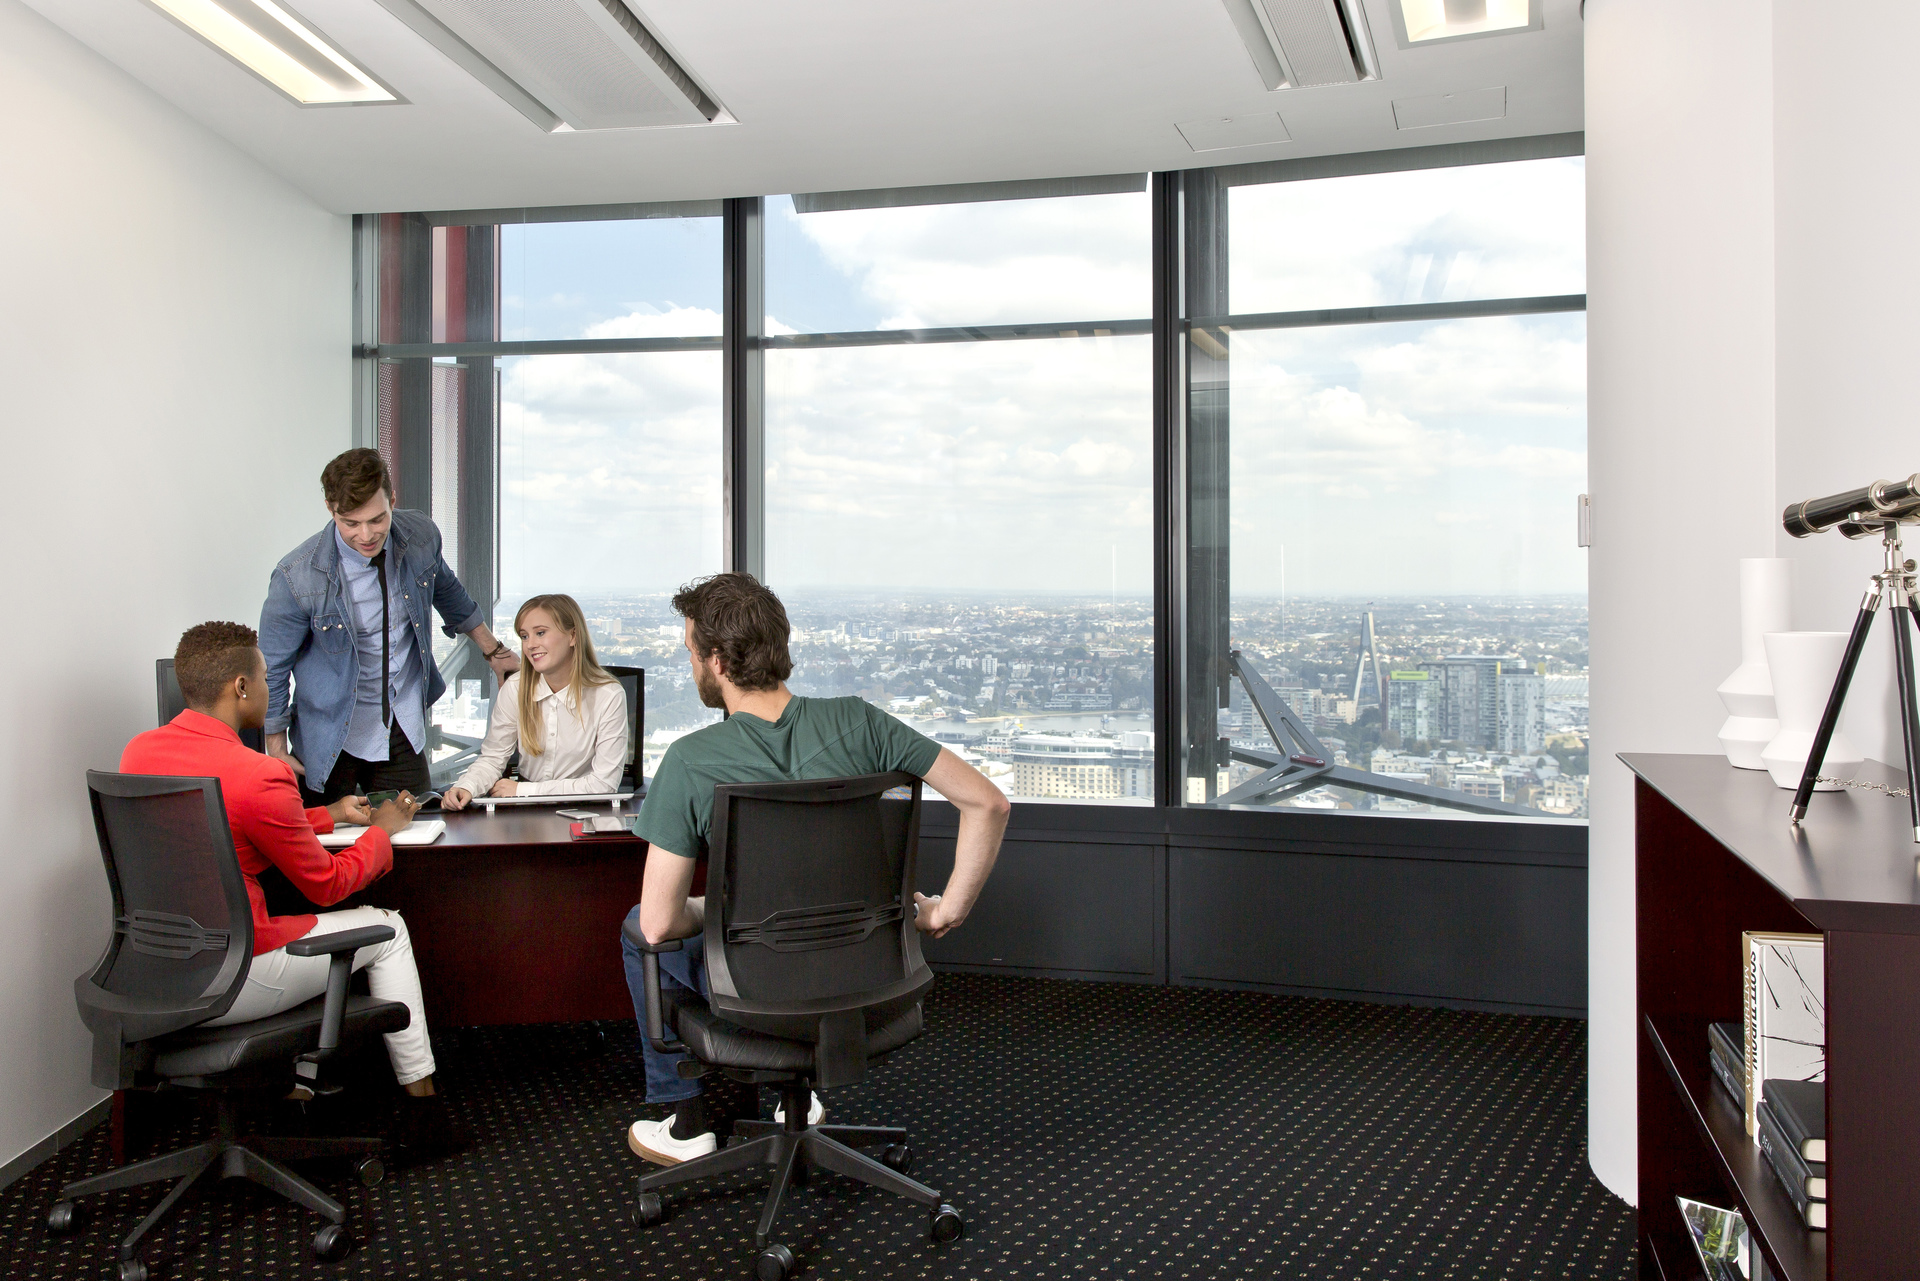 TOP QUALITY OFFICE LOCATED IN THE HEART OF SYDNEY BARANGAROO WITH IMPRESSIVE VIEWS